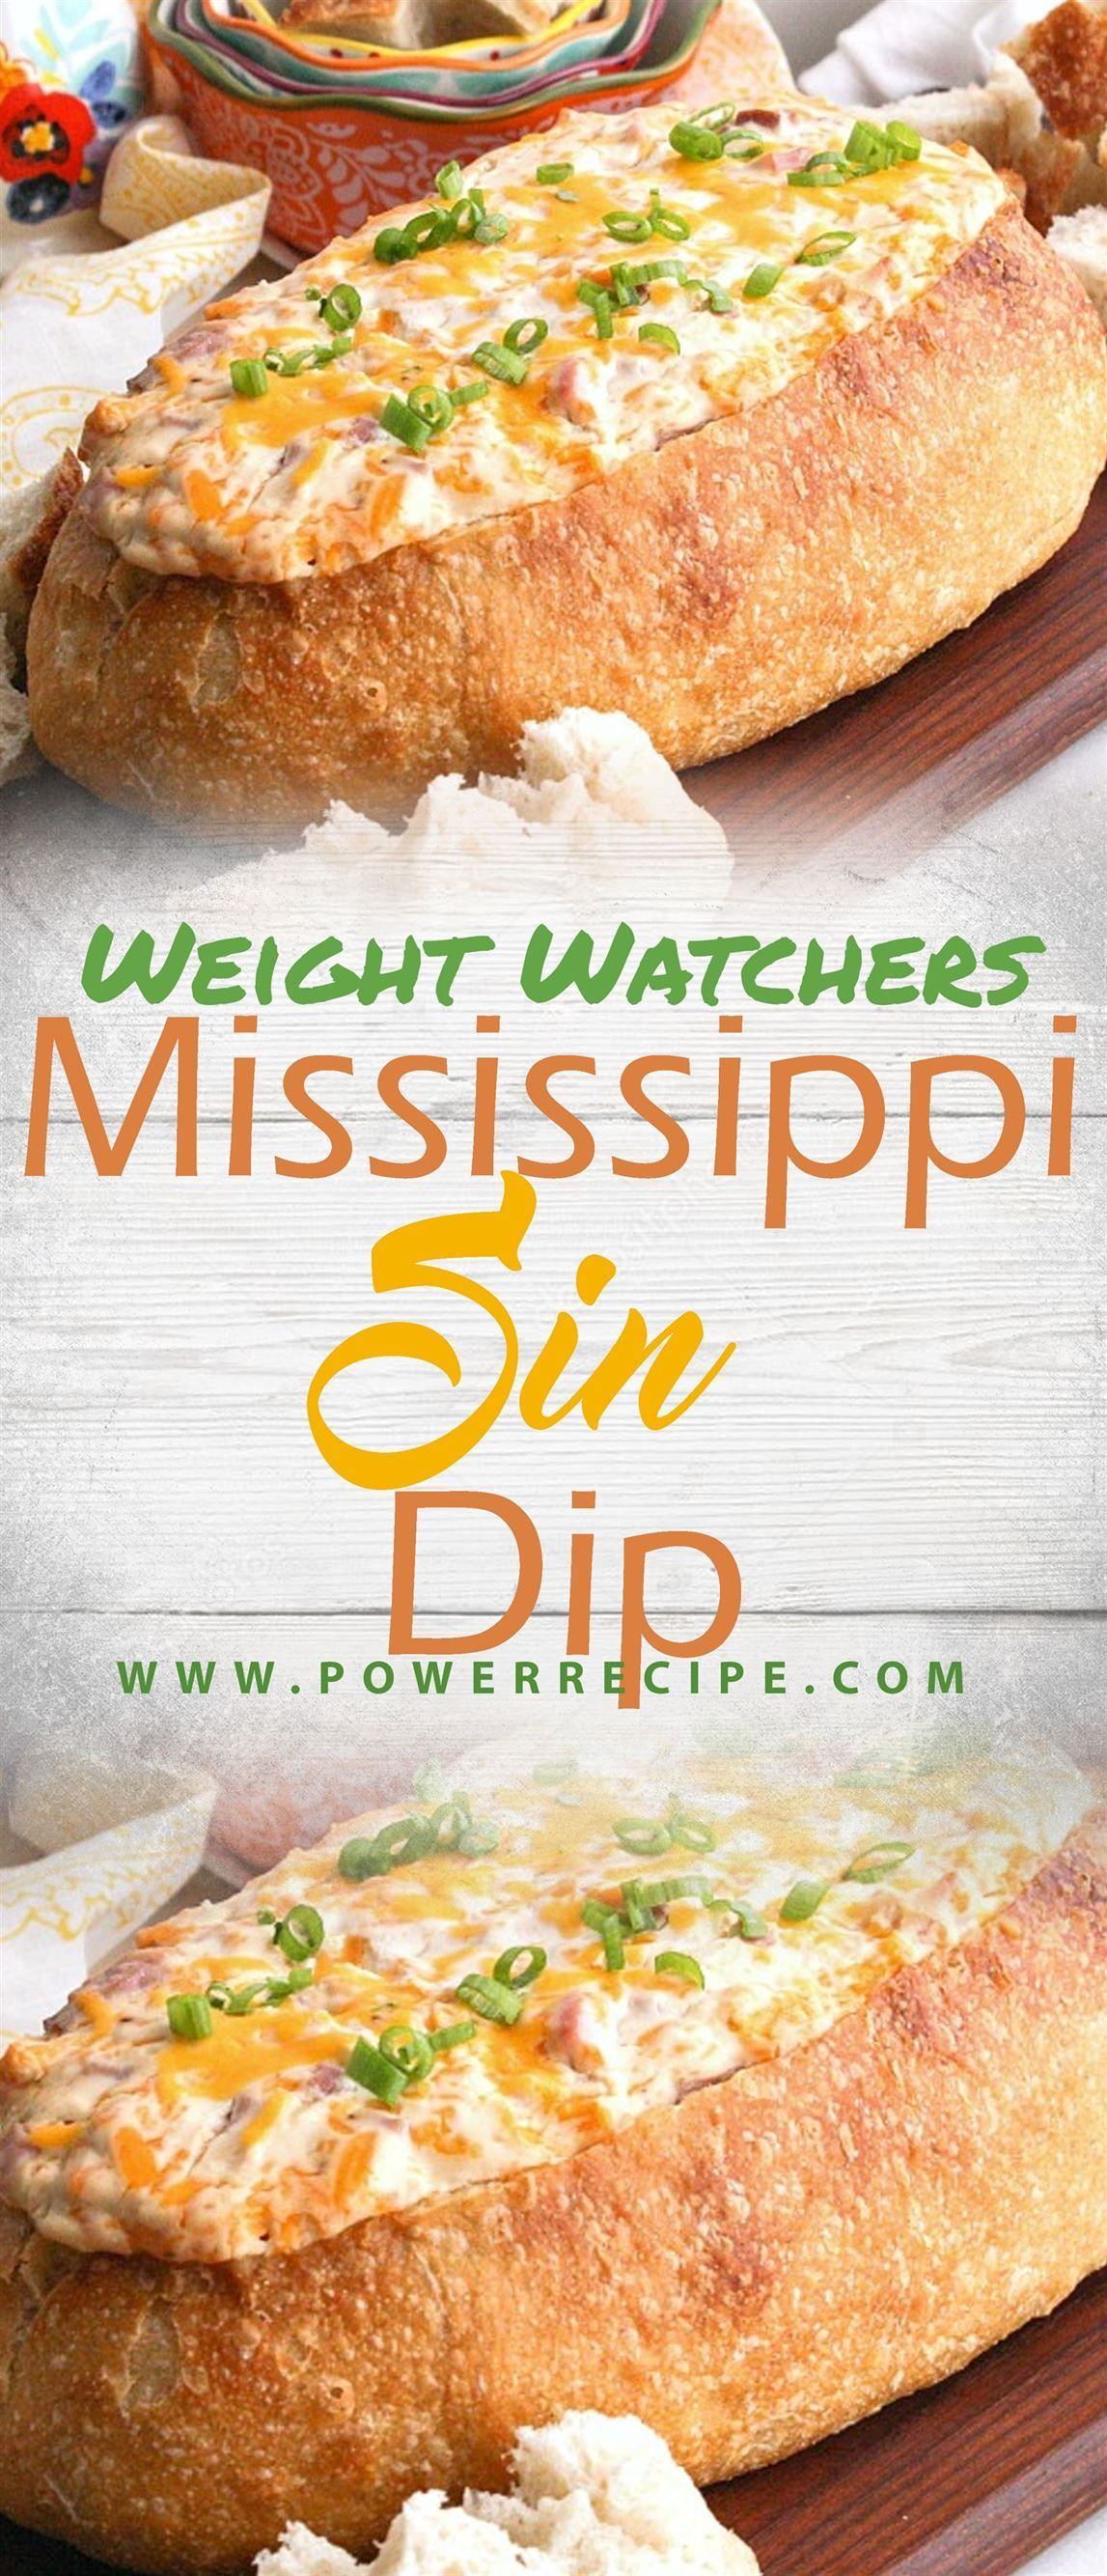 Mississippi Sin Dip - All about Your Power Recipes